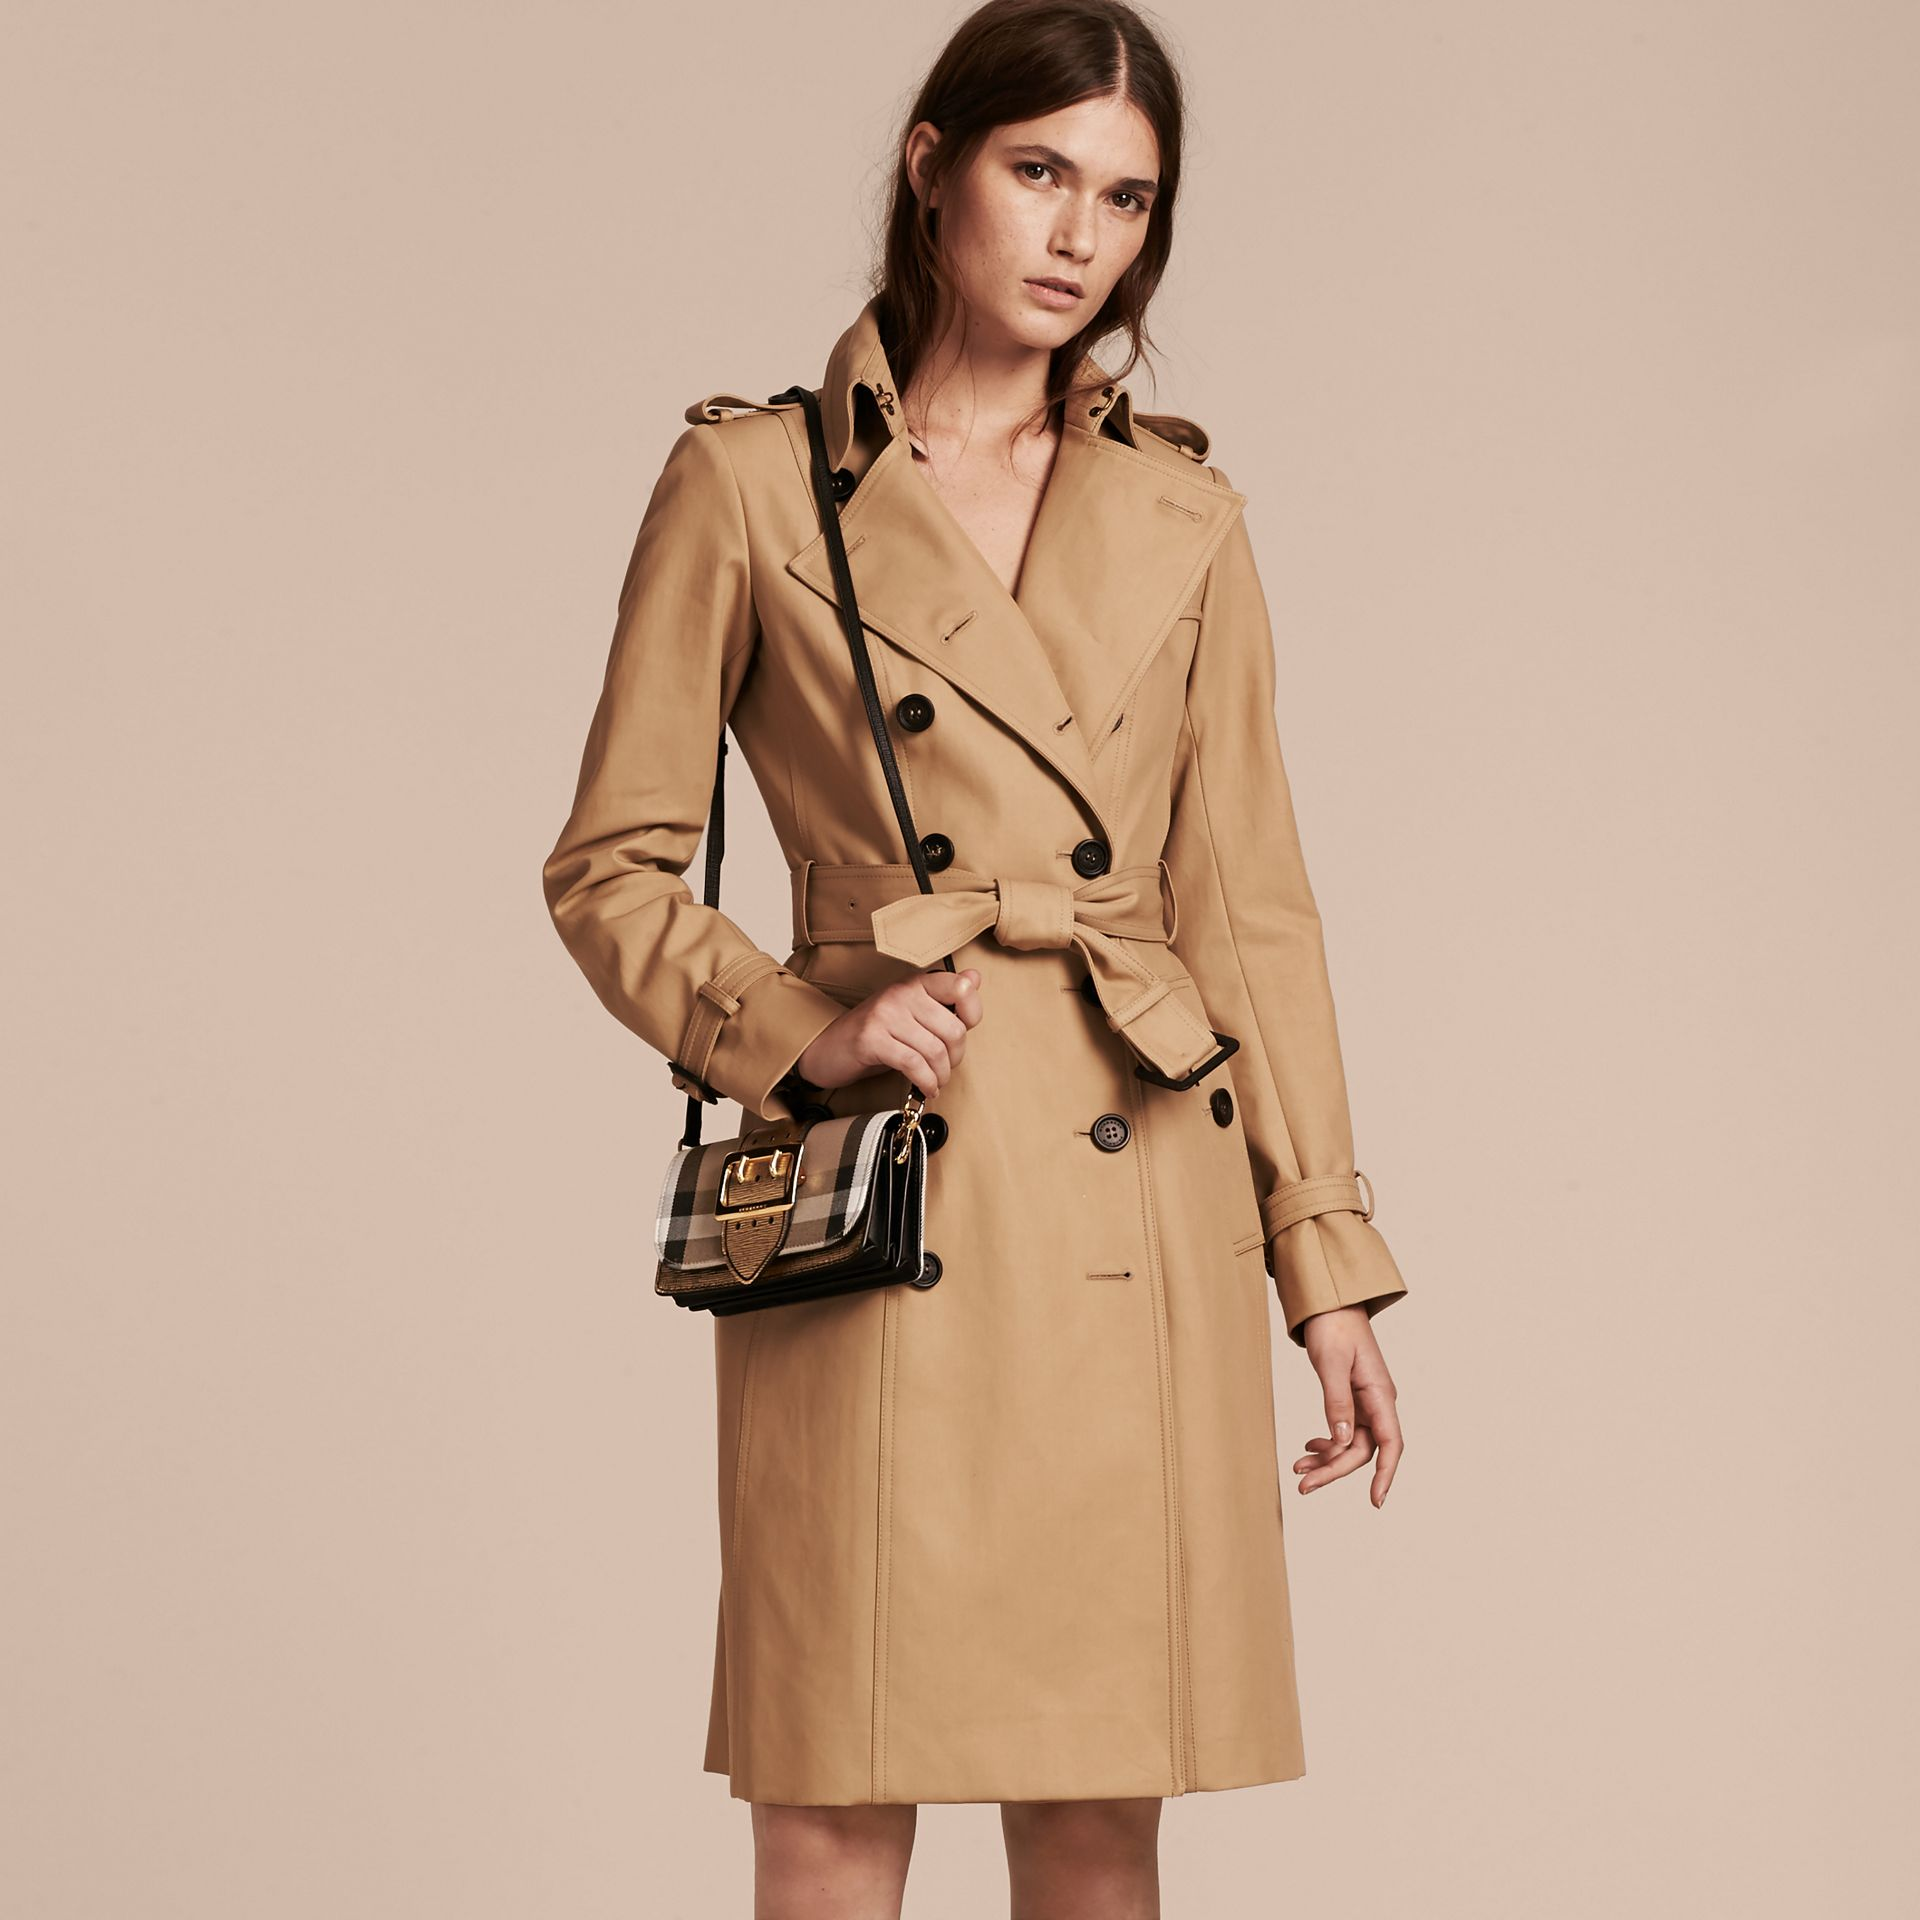 The Small Buckle Bag in House Check and Leather in Gold - Women | Burberry Singapore - gallery image 2